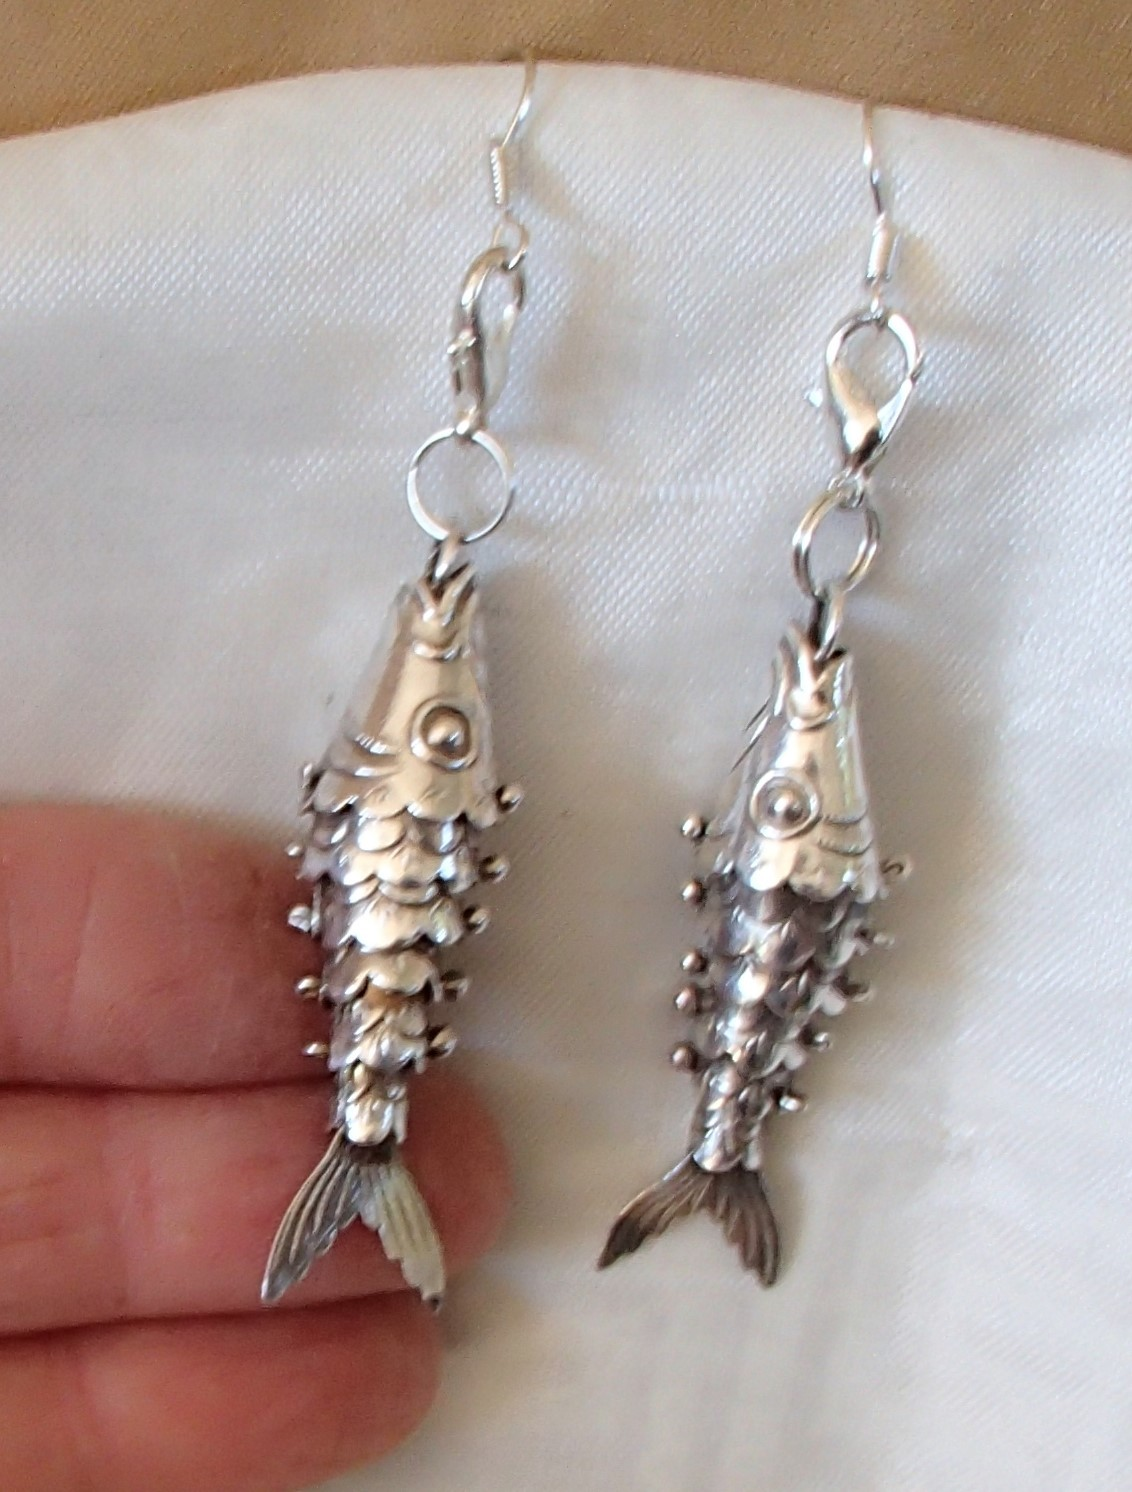 Primary image for Articulated Fish Sterling Handcrafted Convert Earrings Key Chains Zipper Clipper